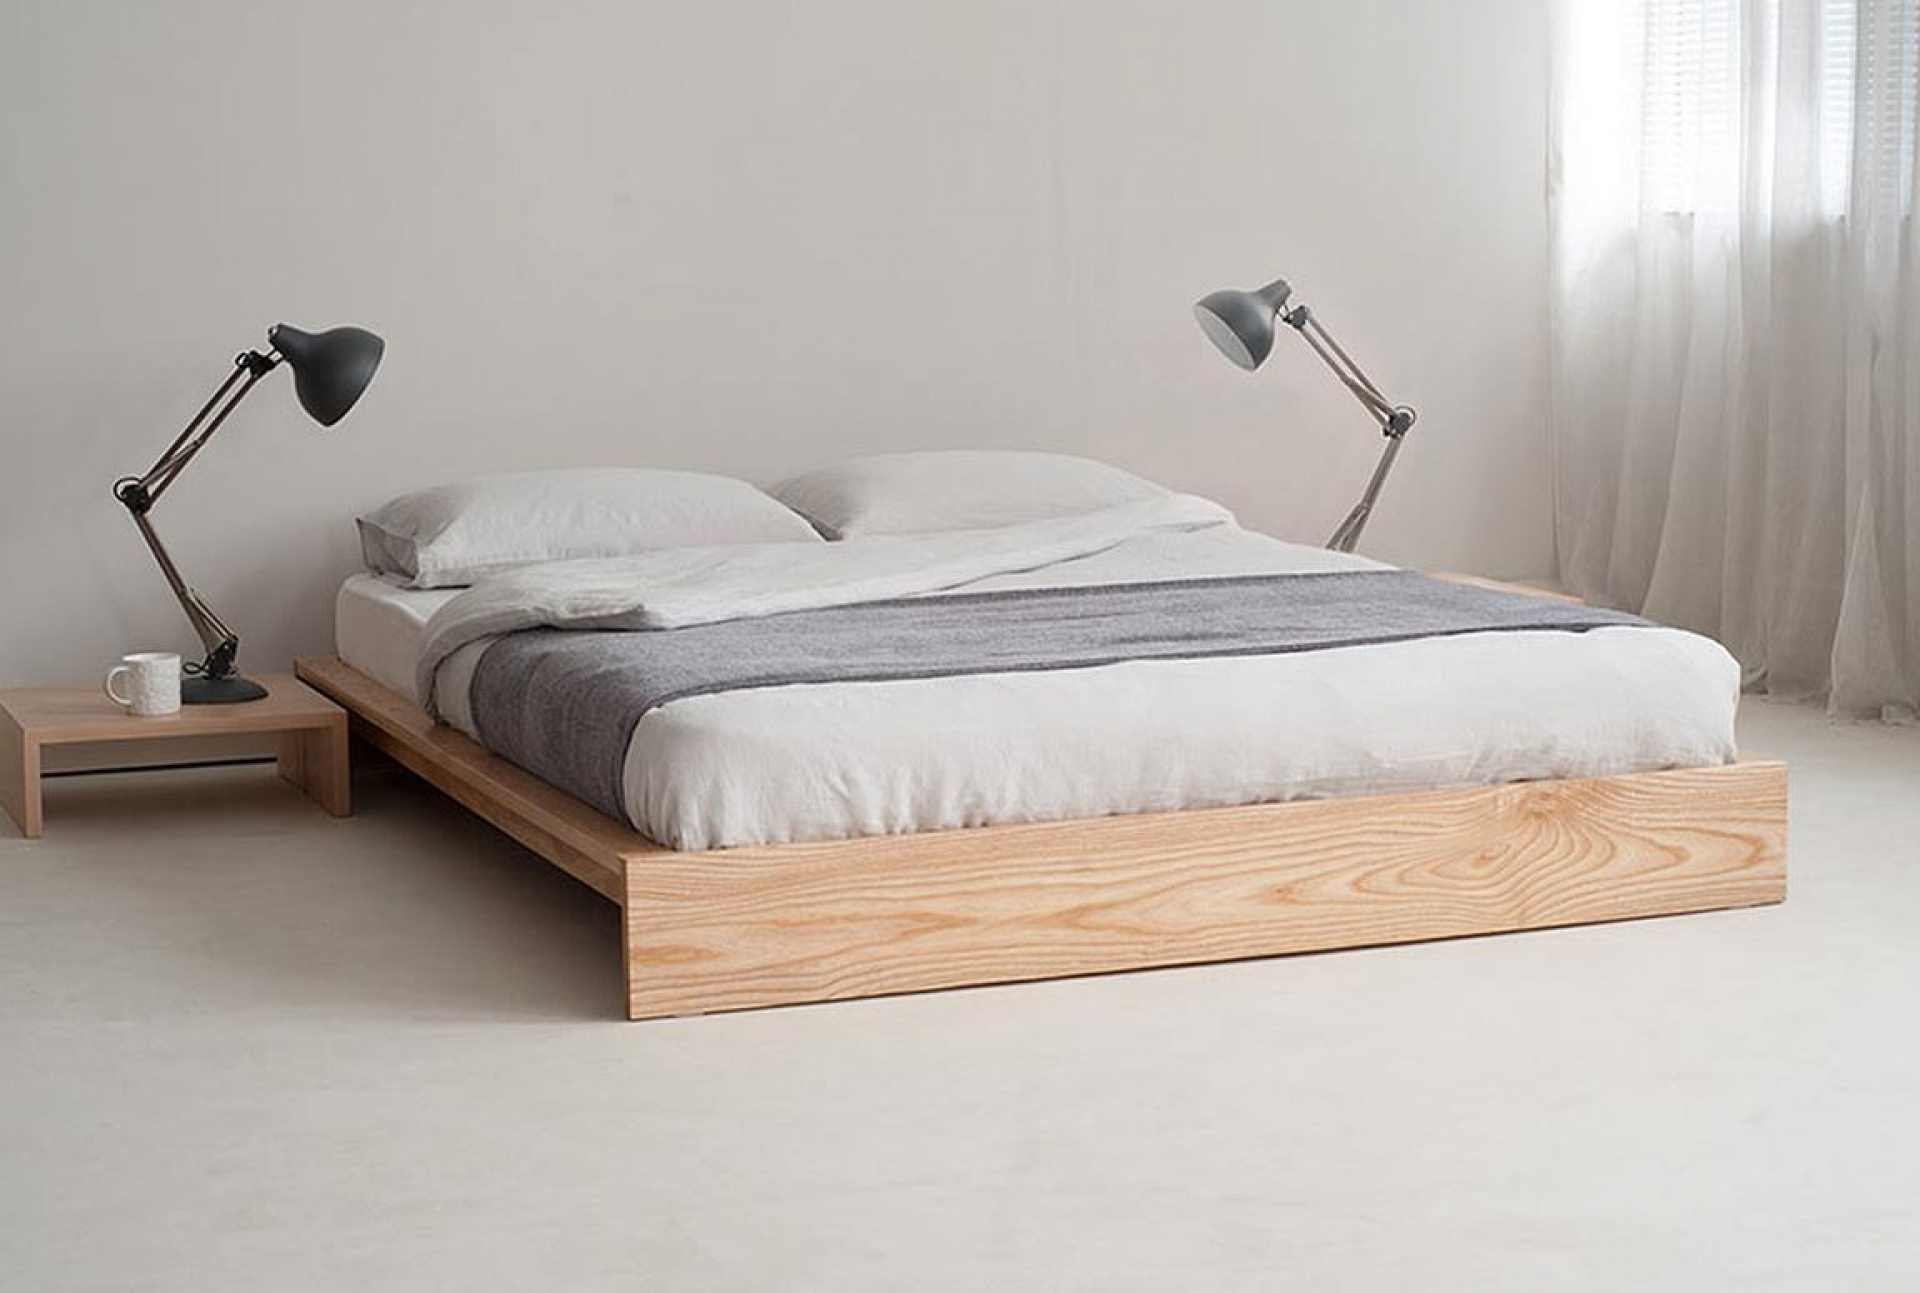 Bed Frames Without Headboards